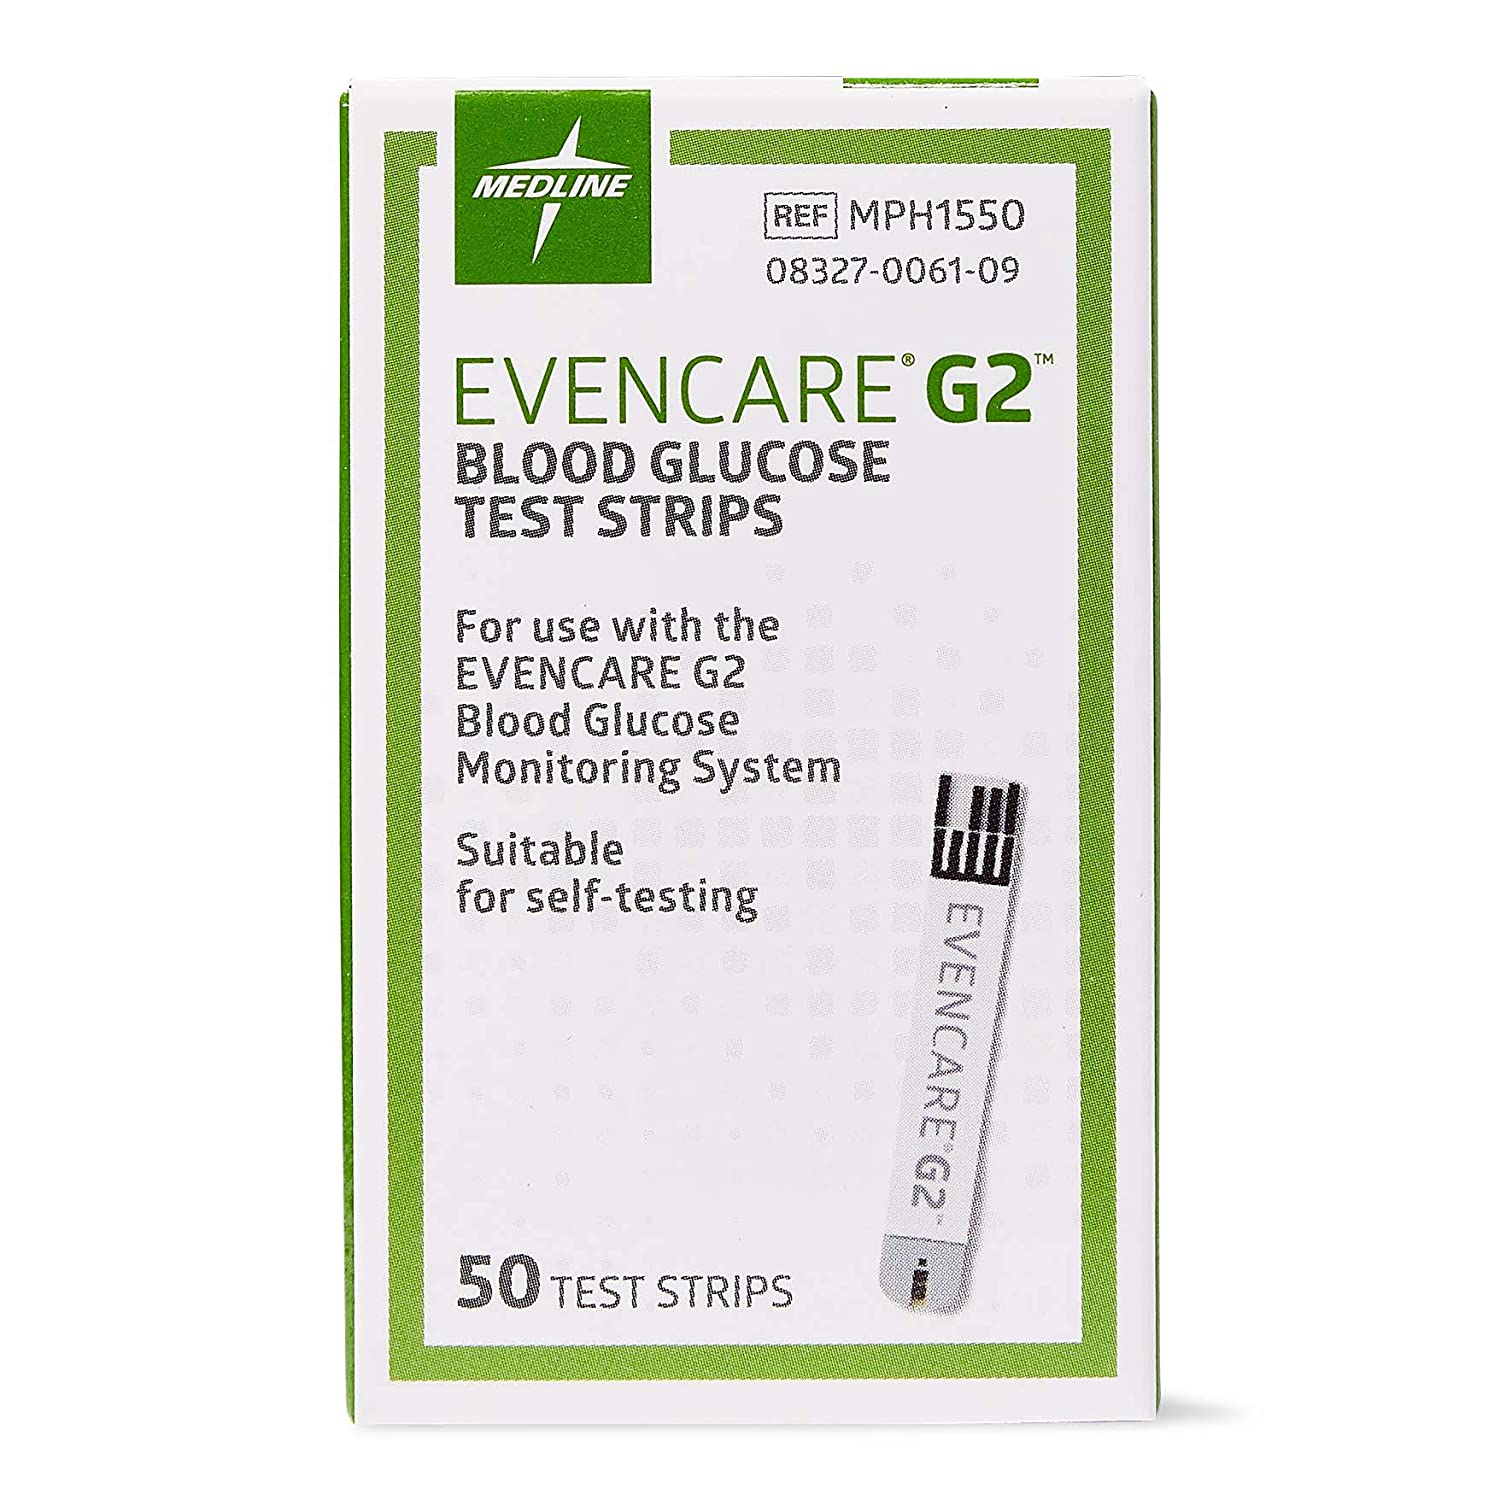 Medline Evencare G2 Blood Glucose Test Strips, For self-testing with Evencare G2 Monitoring System (50 Count): Industrial & Scientific